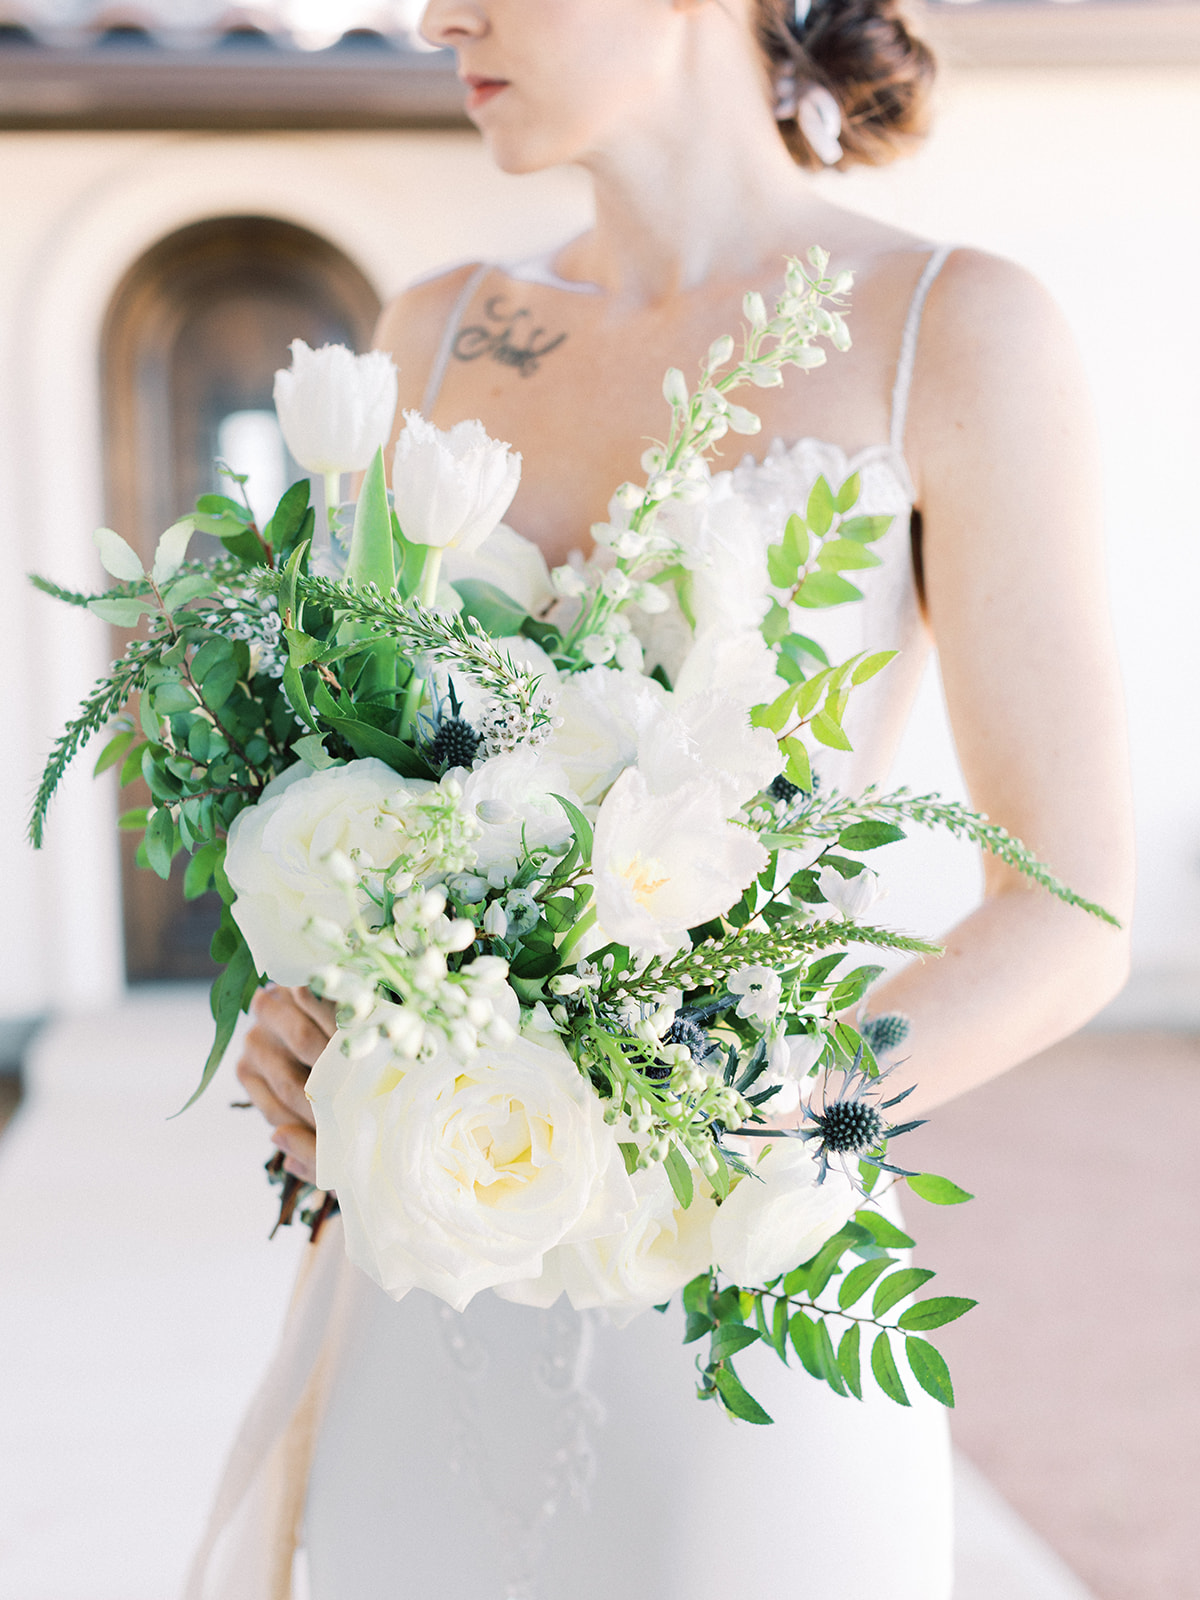 White and greenery wedding bouquet: Elopement vineyard wedding at Umbra Winery by Alexa Kay Events. See more wedding ideas at alexakayevents.com!